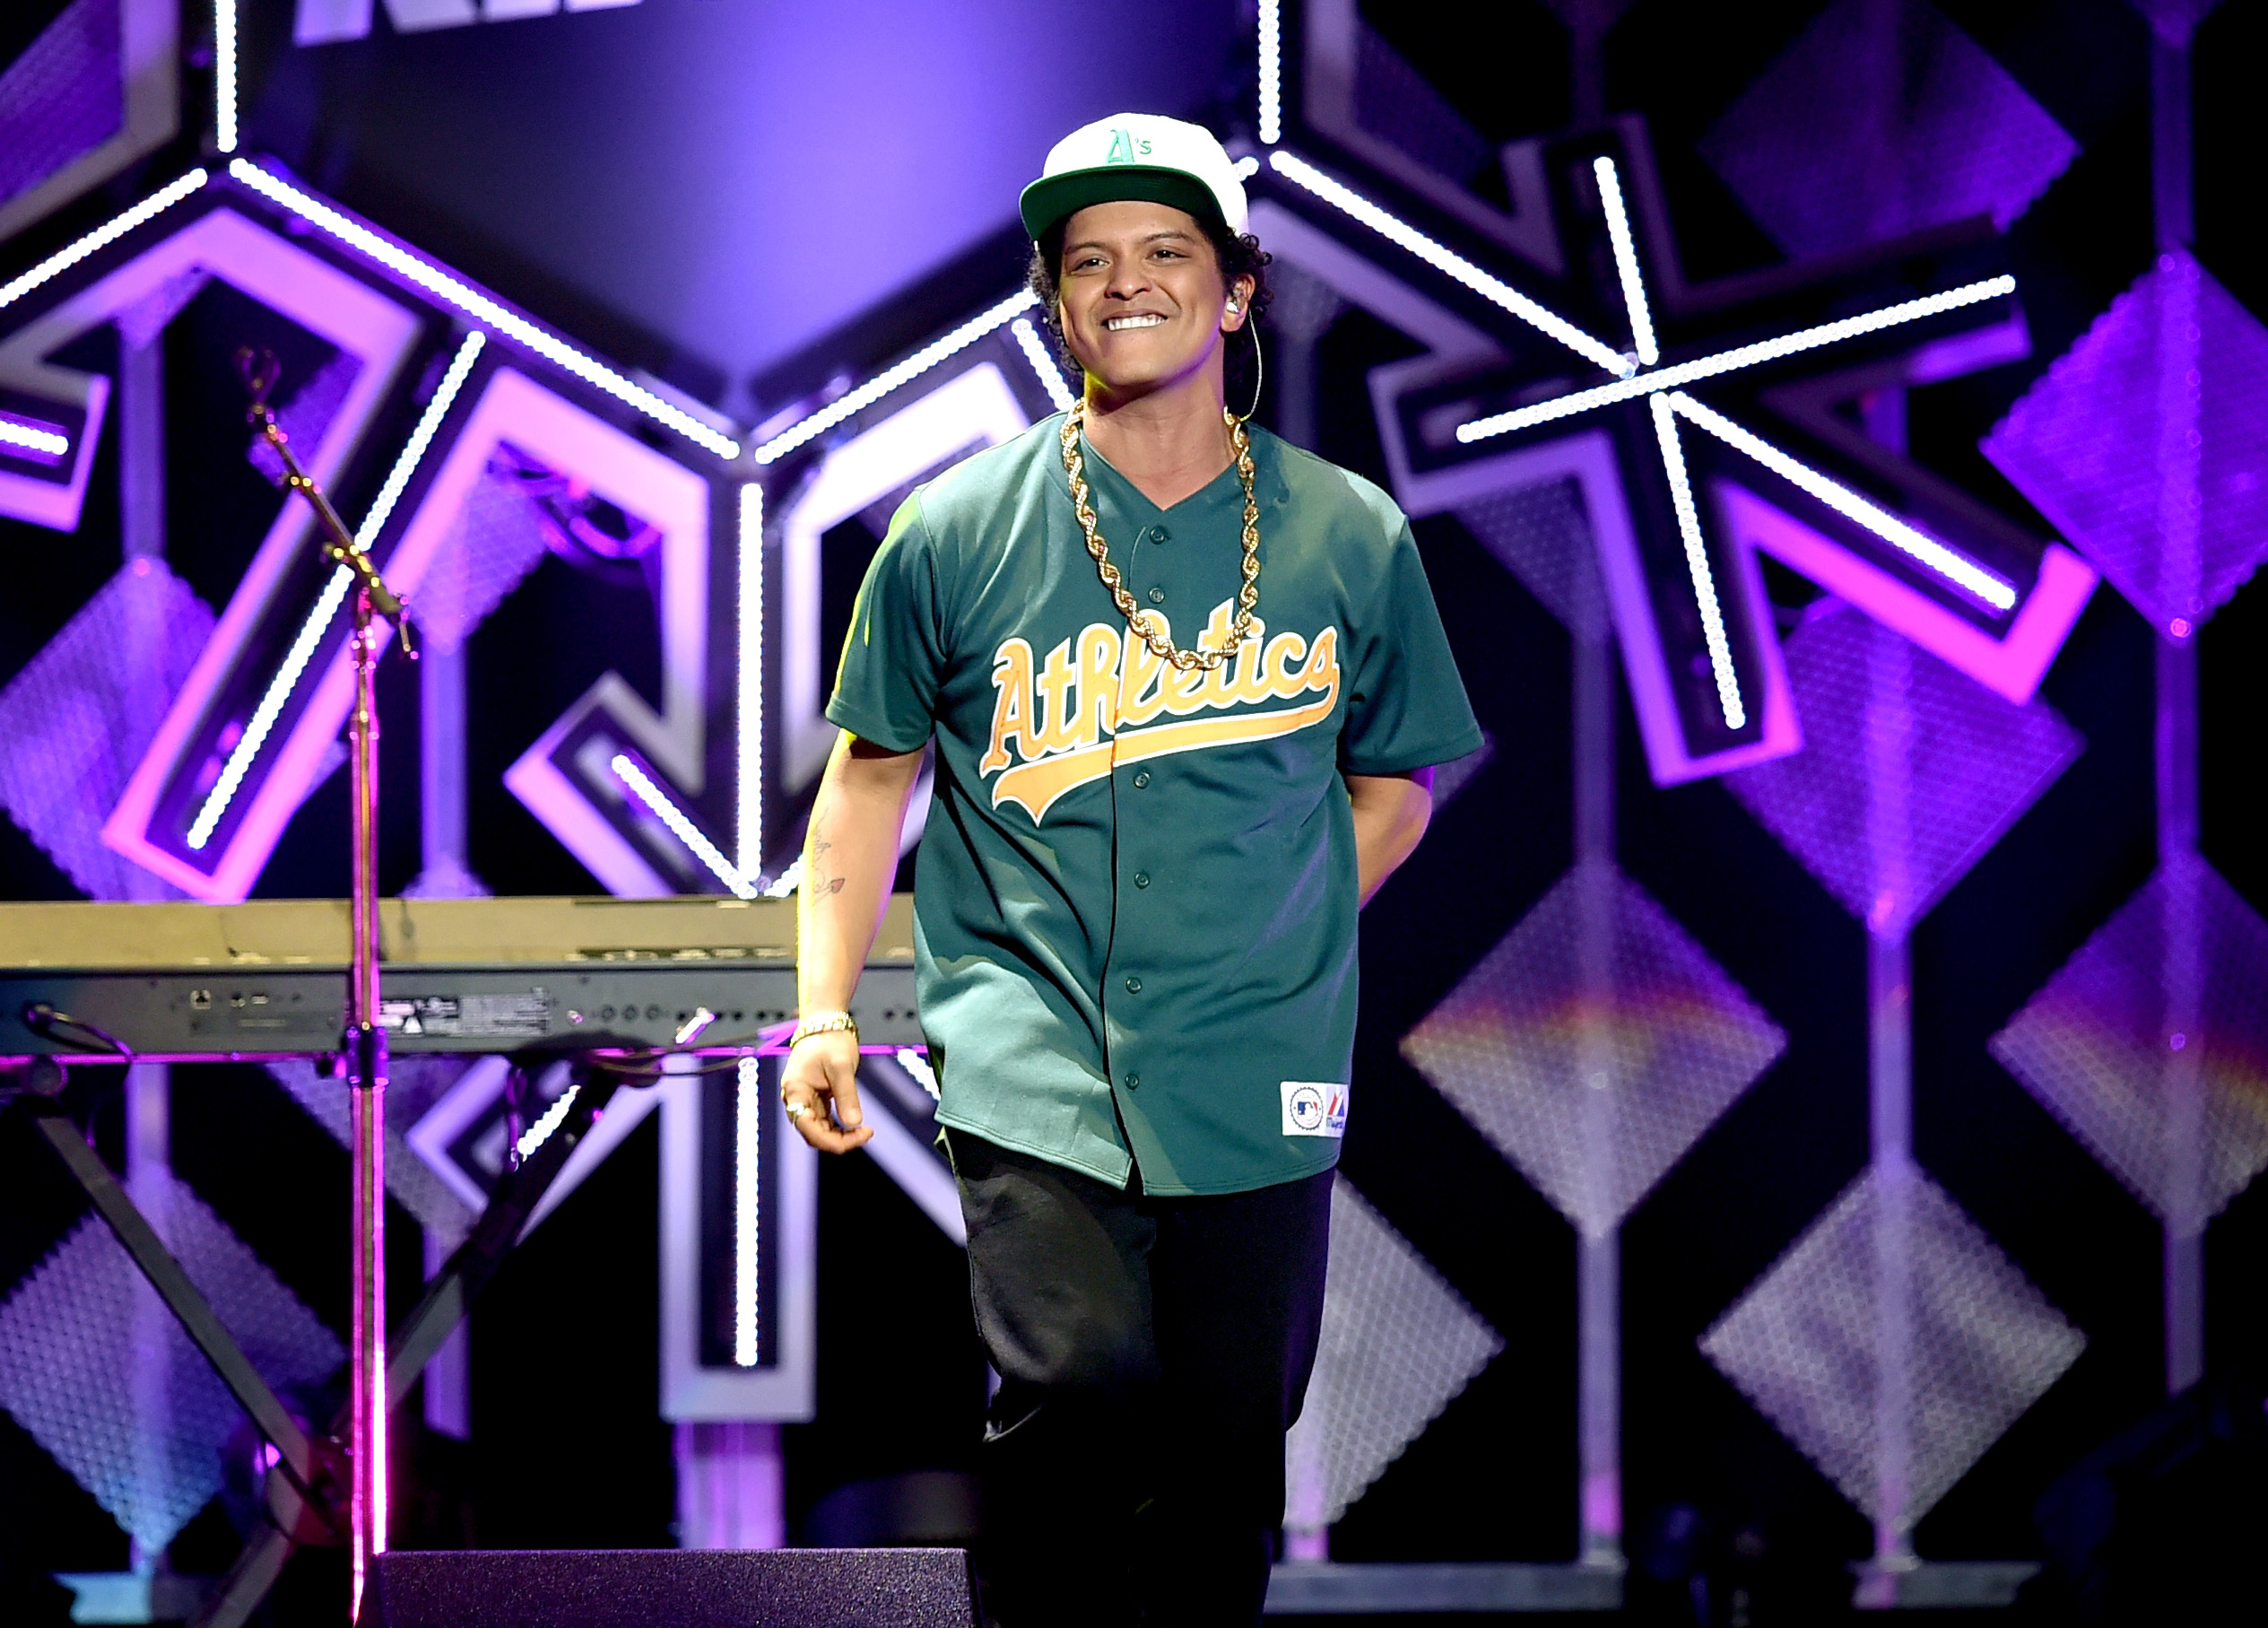 Bruno Mars performs during 102.7 KIIS FM's Jingle Ball on December 2, 2016 in Los Angeles, California. (Photo by Kevin Winter/Getty Images for iHeartMedia)